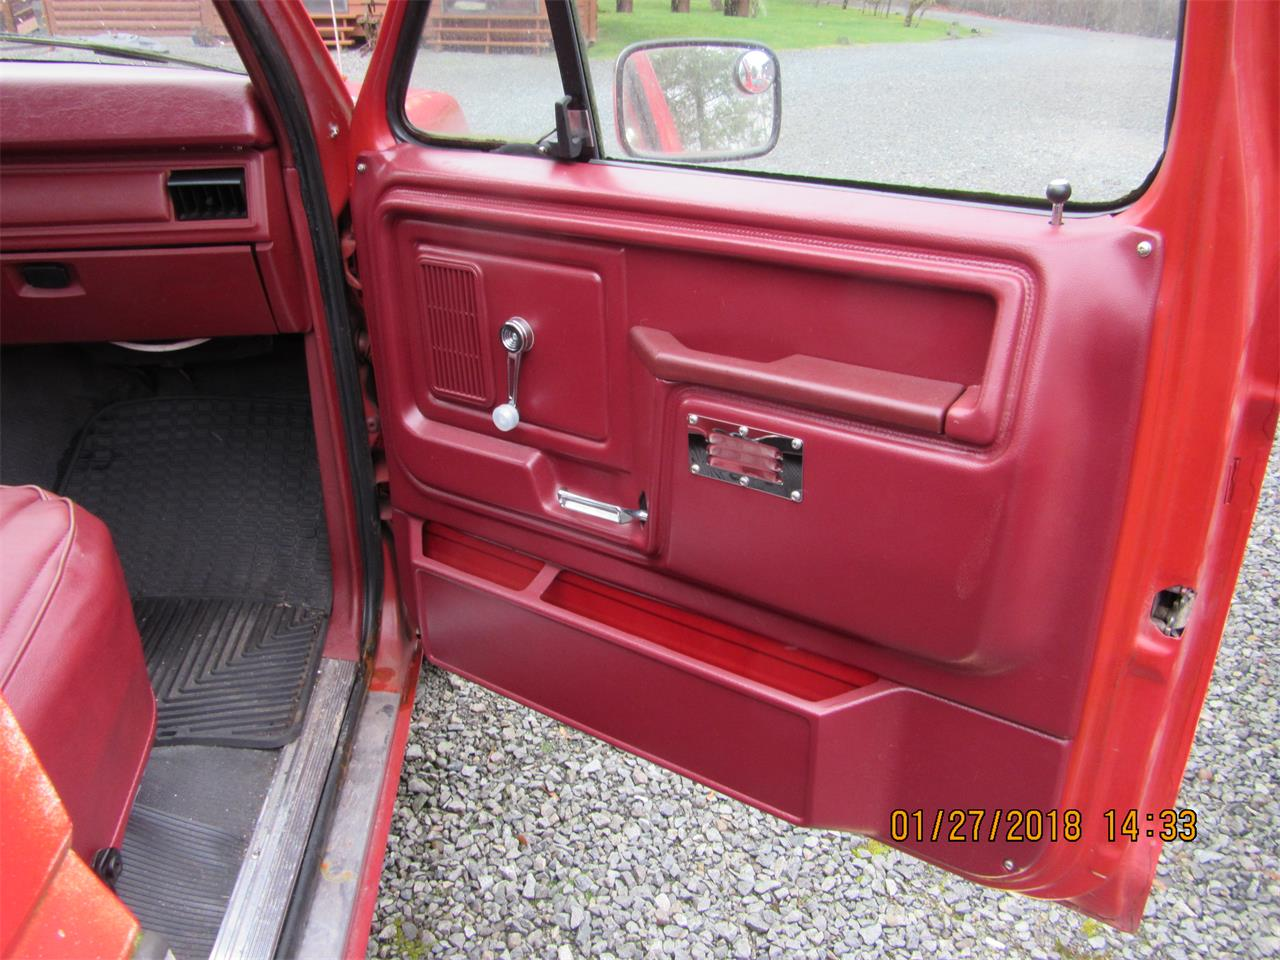 1985 Ford F150 for sale in PUYALLUP, WA – photo 19